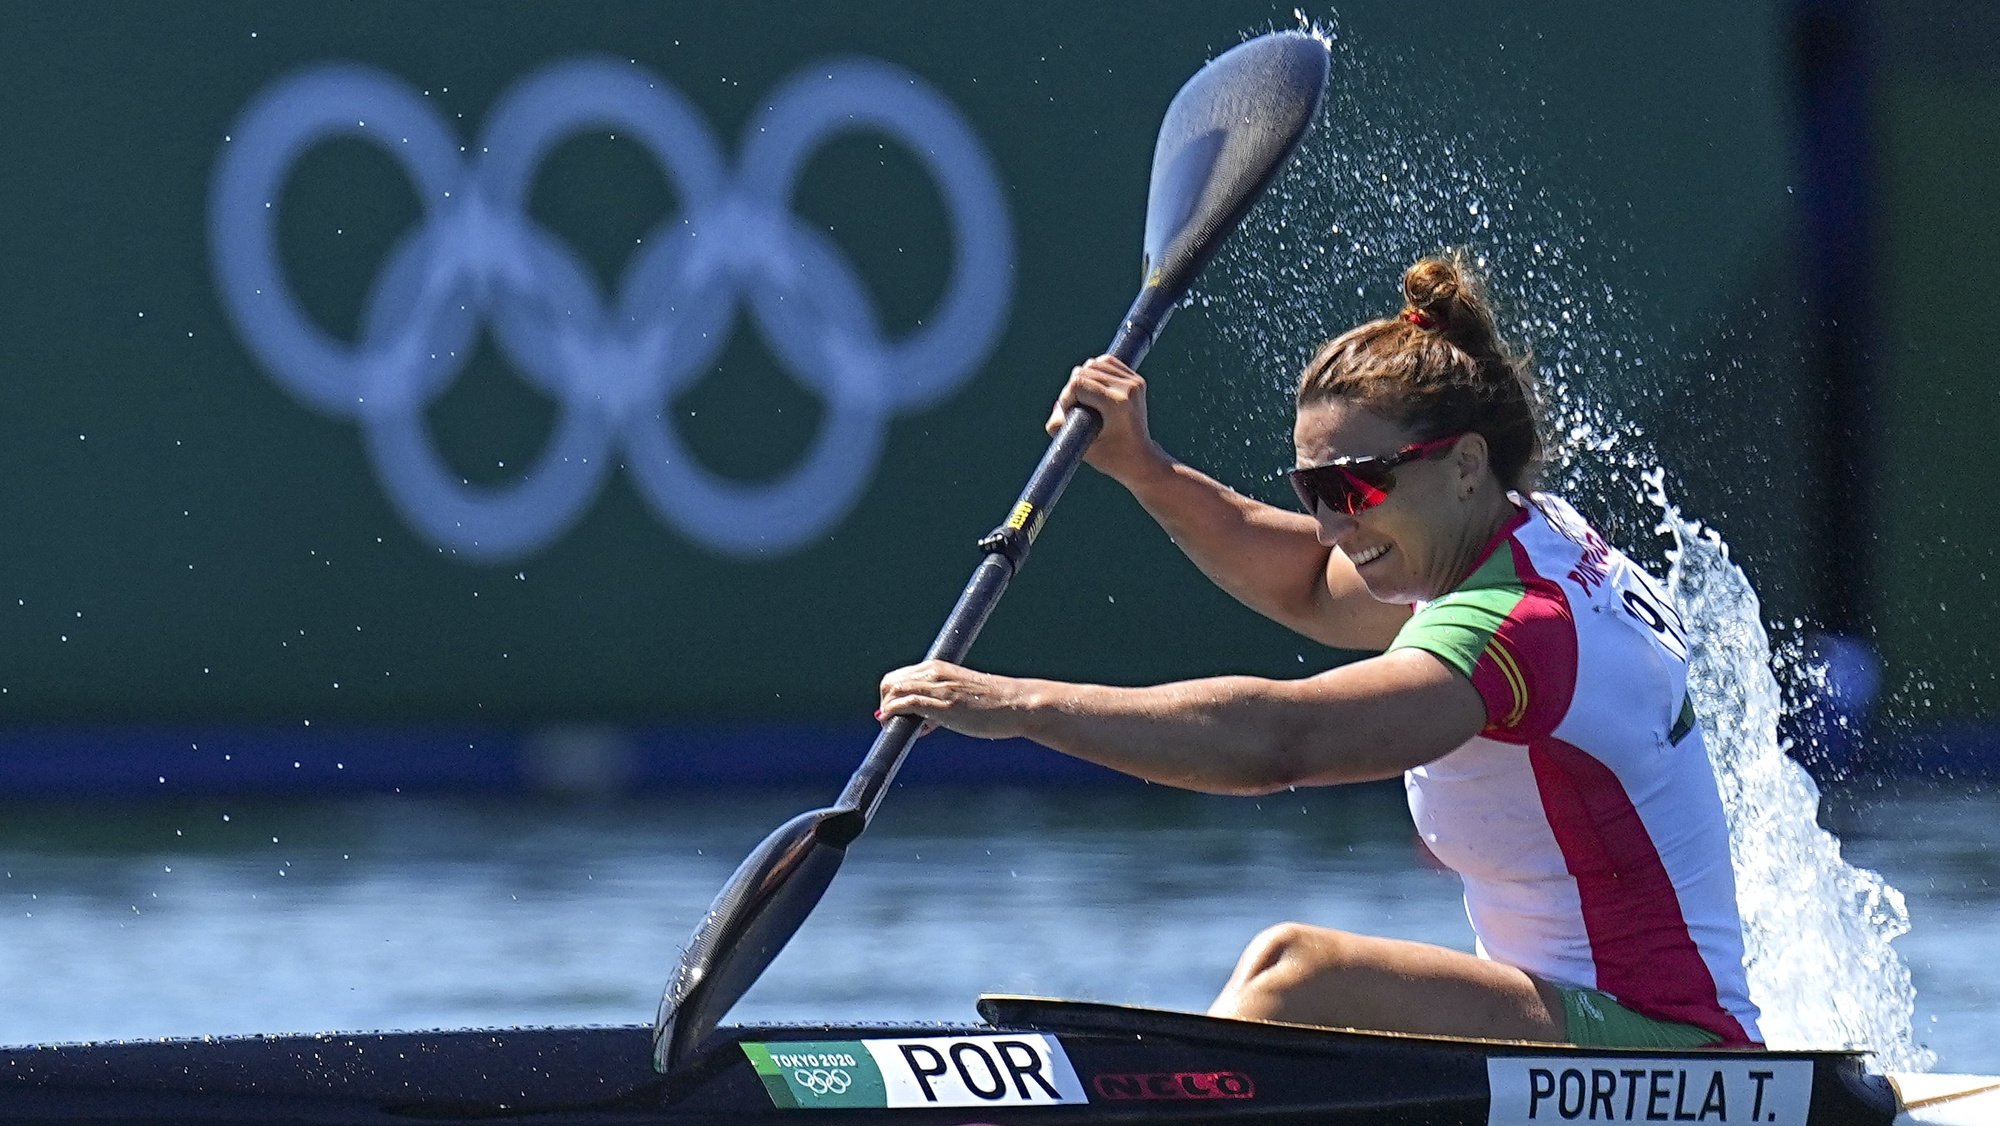 epa09396143 Teresa Portela from Portugal in action during the Women's Kayak Single 500m Semifinals of the Canoeing Sprint events of the Tokyo 2020 Olympic Games at the Sea Forest Waterway in Tokyo, Japan, 05 August 2021.  EPA/NIC BOTHMA